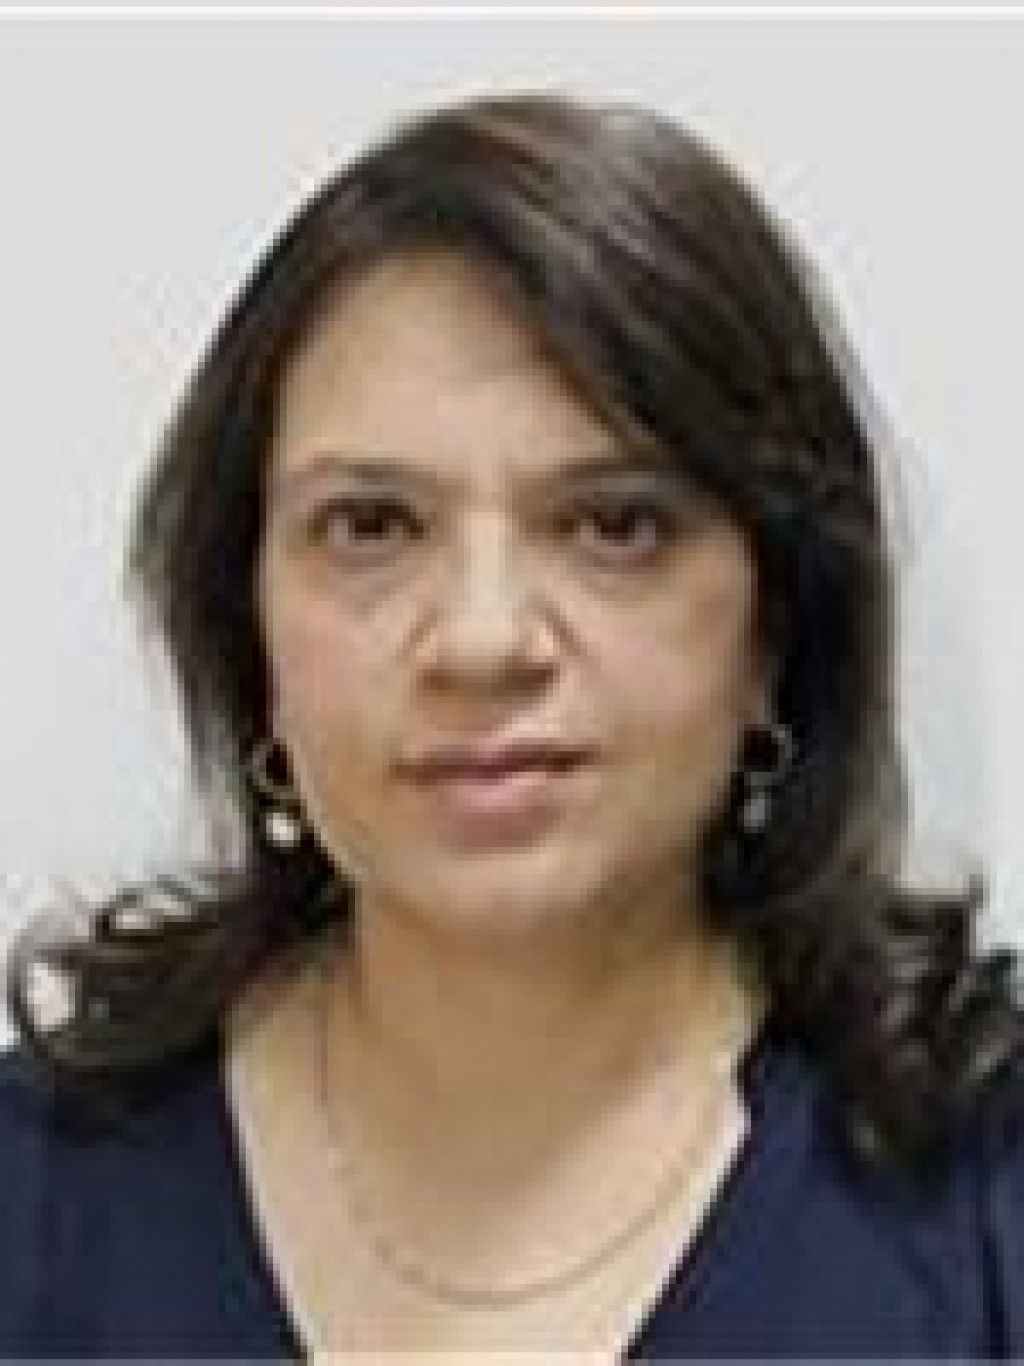 Dr. Massani is a hospitalist who is affiliated with Knapp